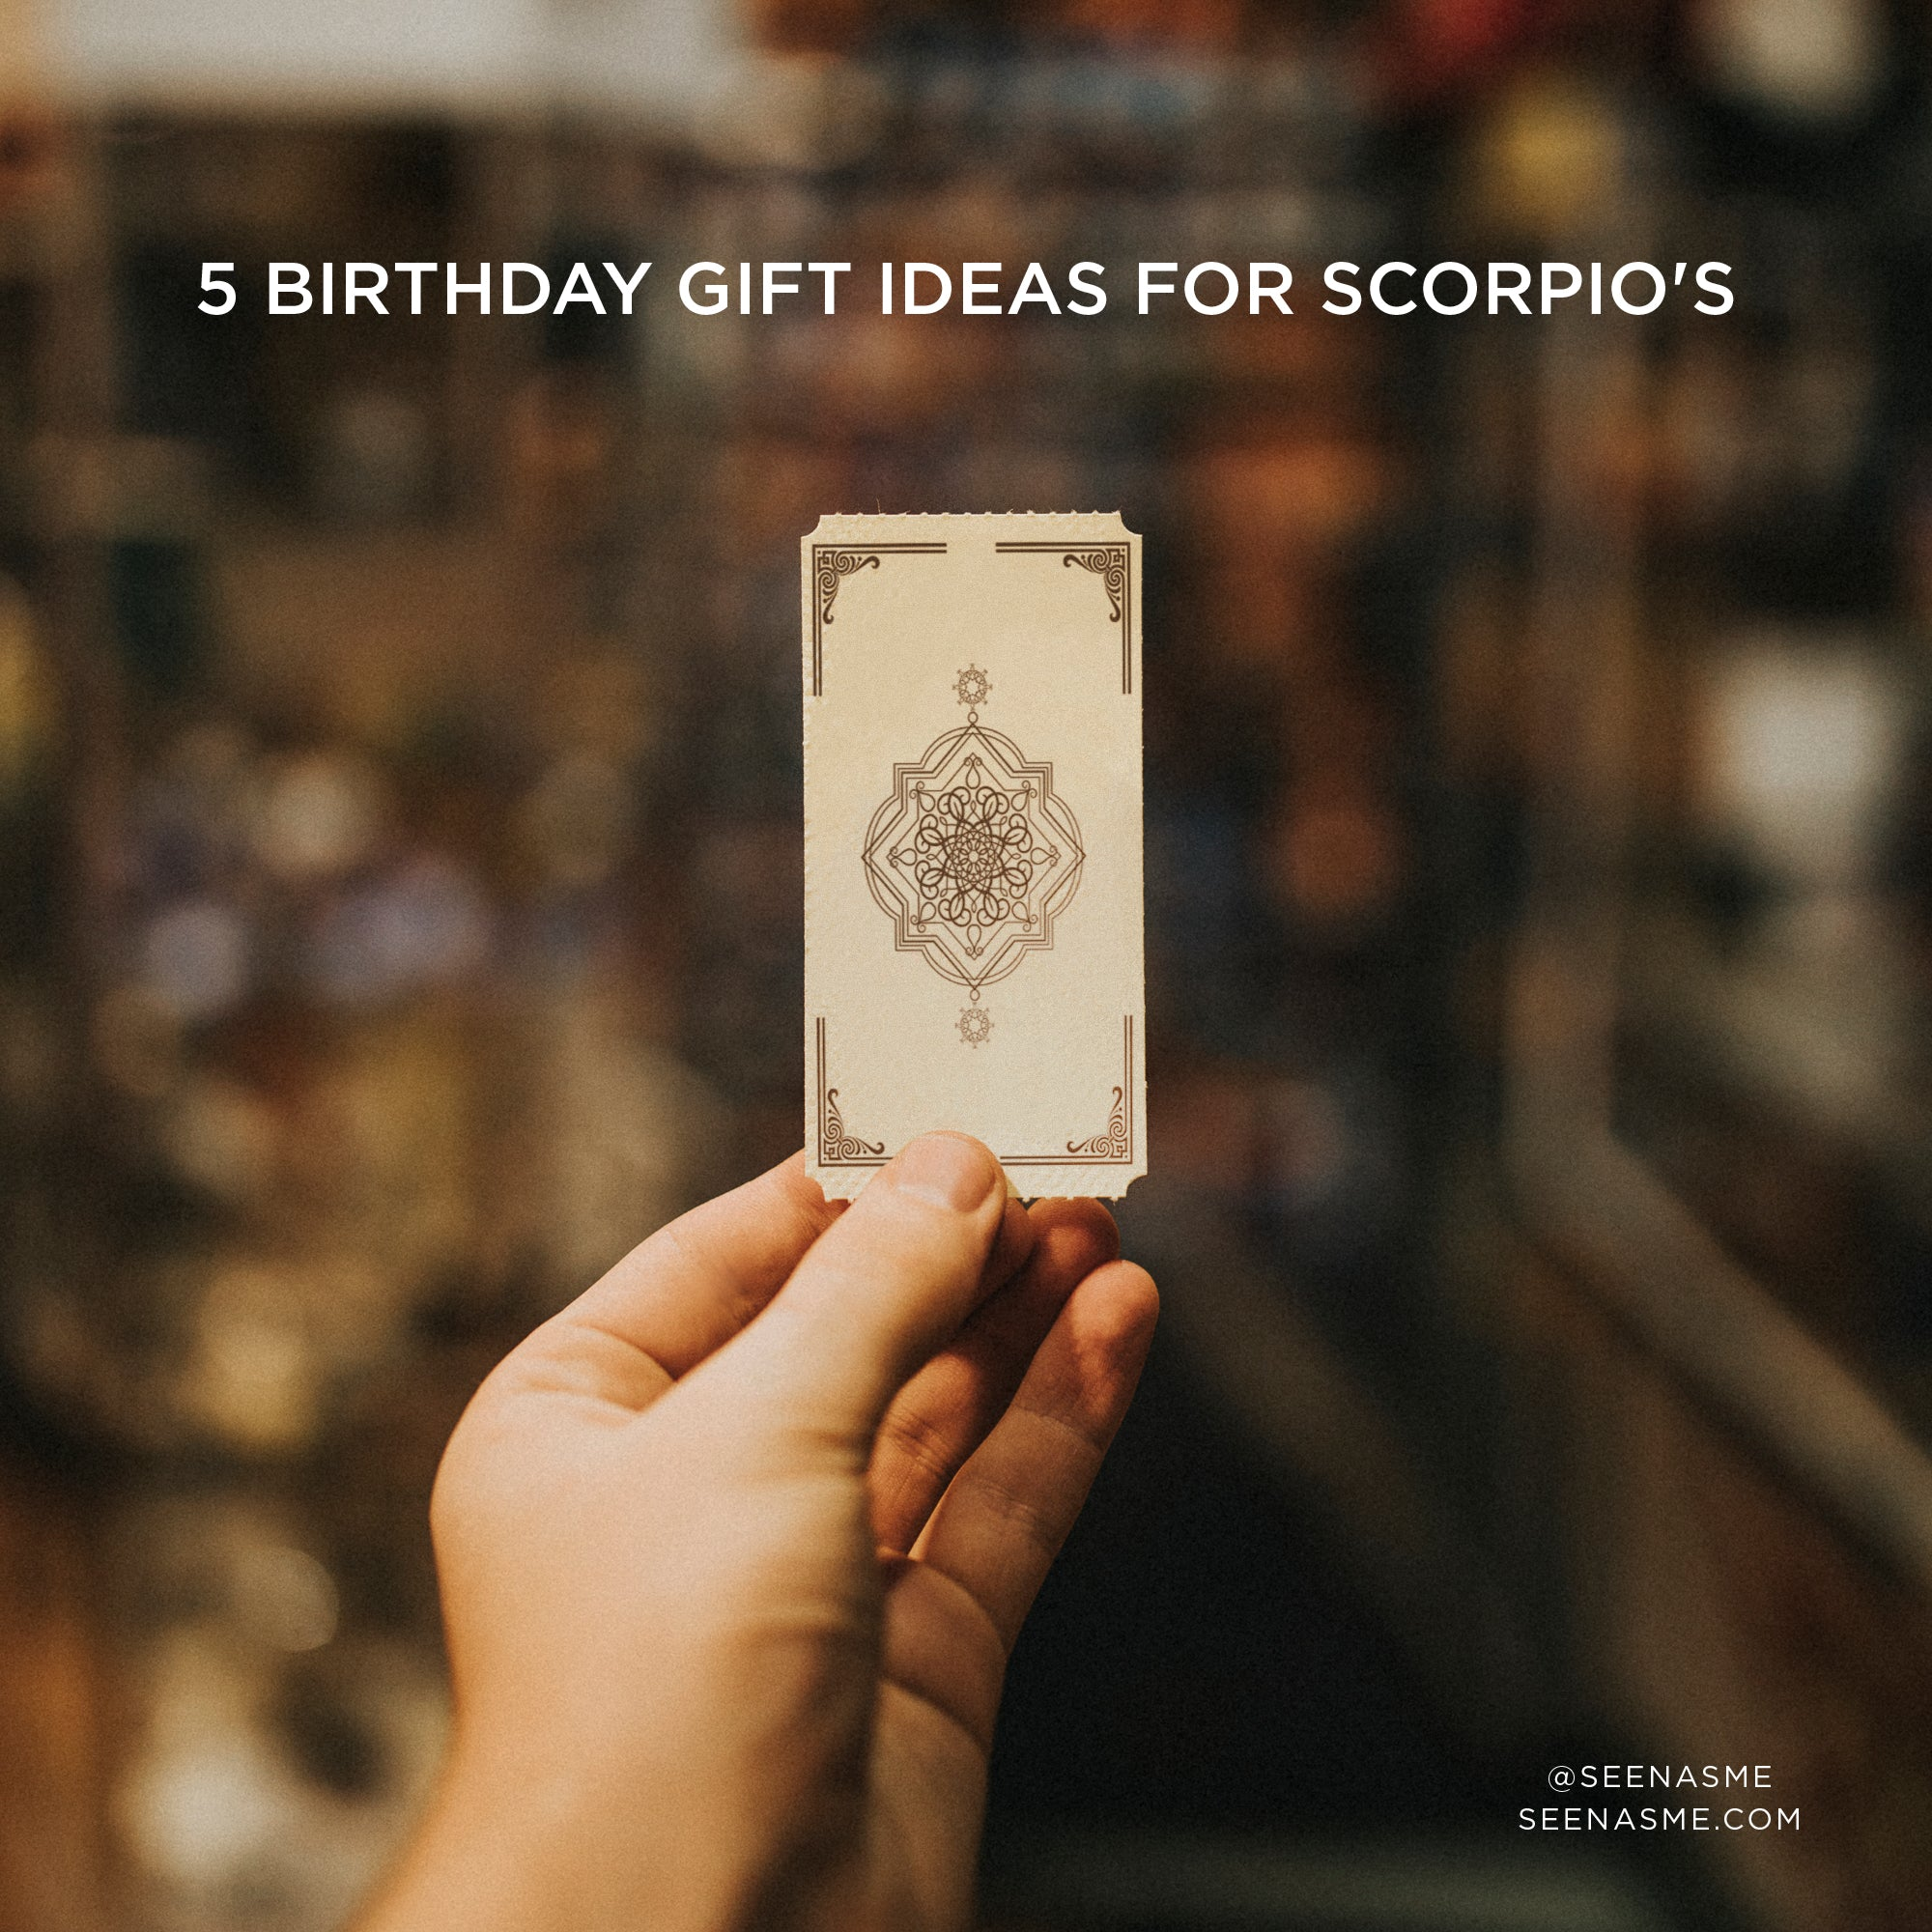 5 gift ideas for scorpio